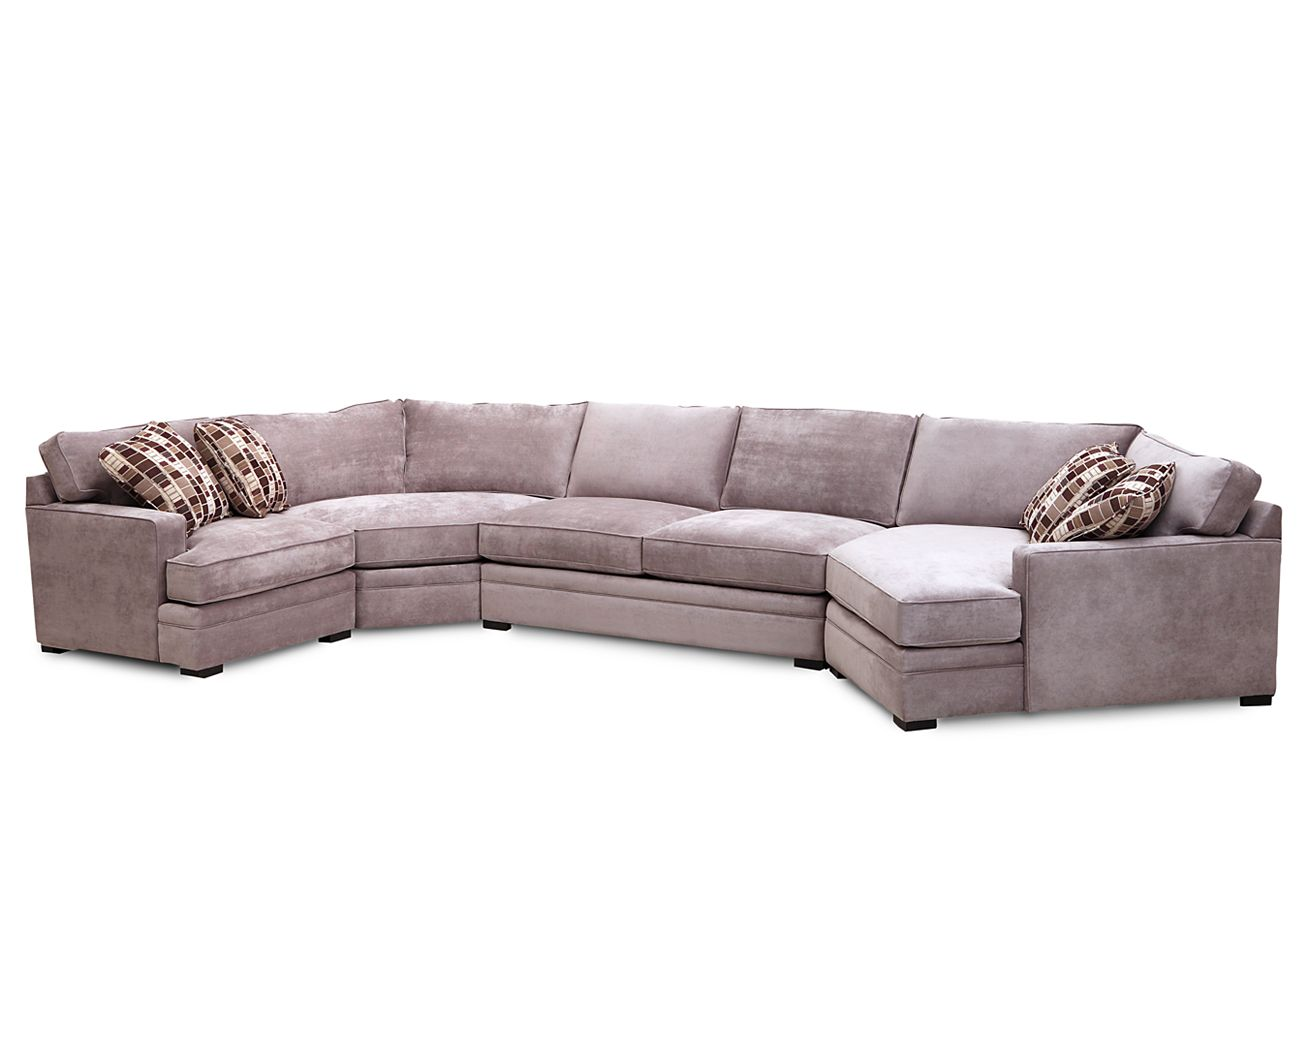 Sofa mart sectionals glenwood 4 pc sectional sofa mart 1 for Furniture row